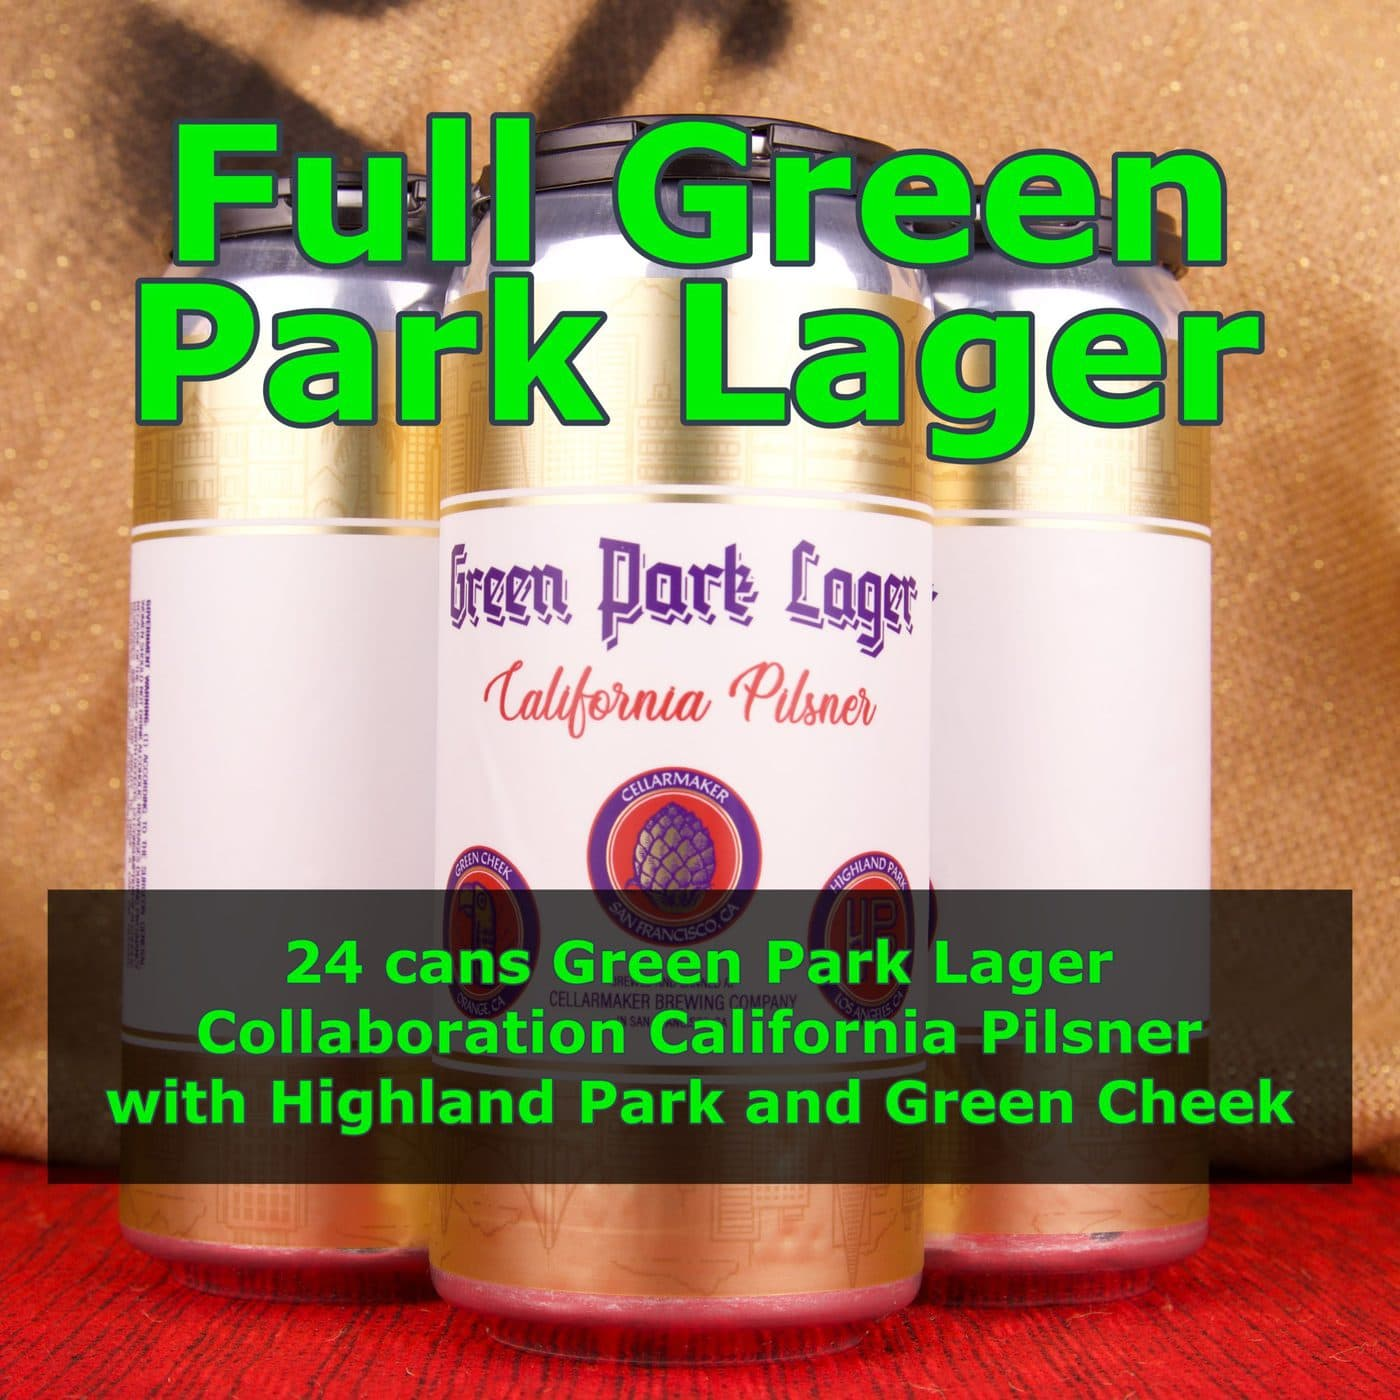 FULL CASE 24 CANS Green Park Lager – Shipping Out Tuesday 6/15 For Next Day Delivery*